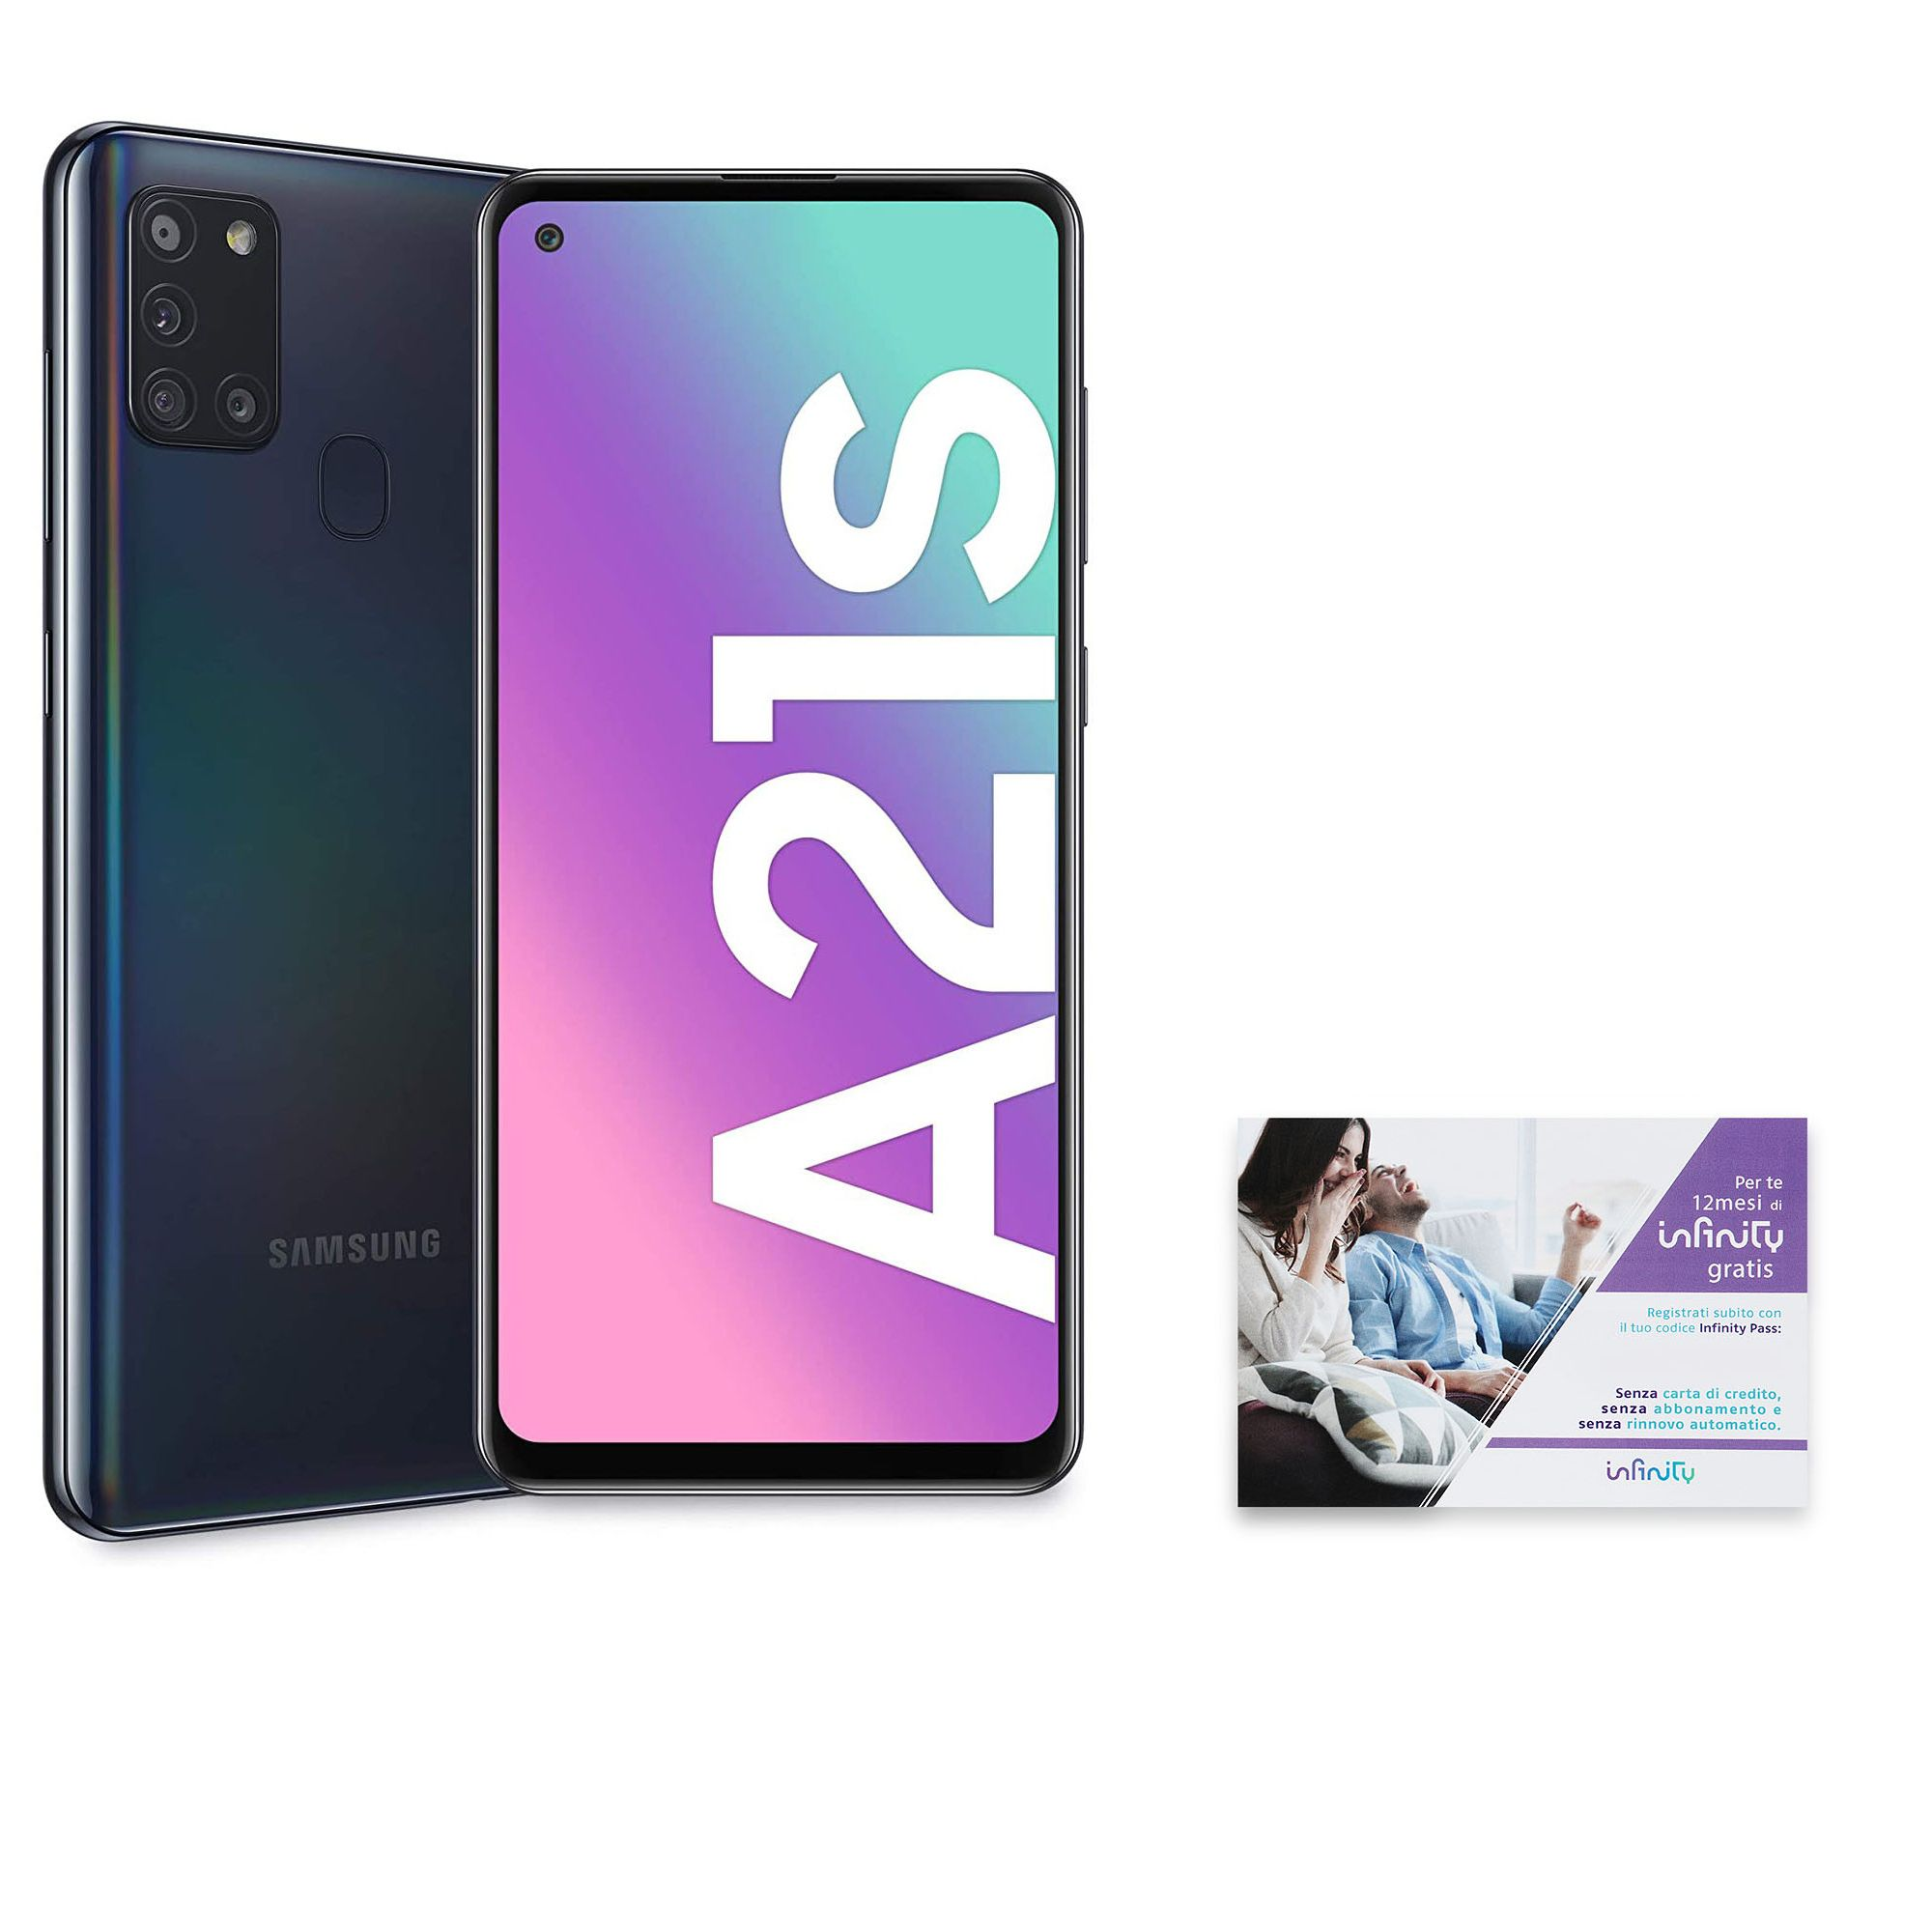 Image of A21S Smartphone 4G LTE 128GB + 12 mesi Infinity